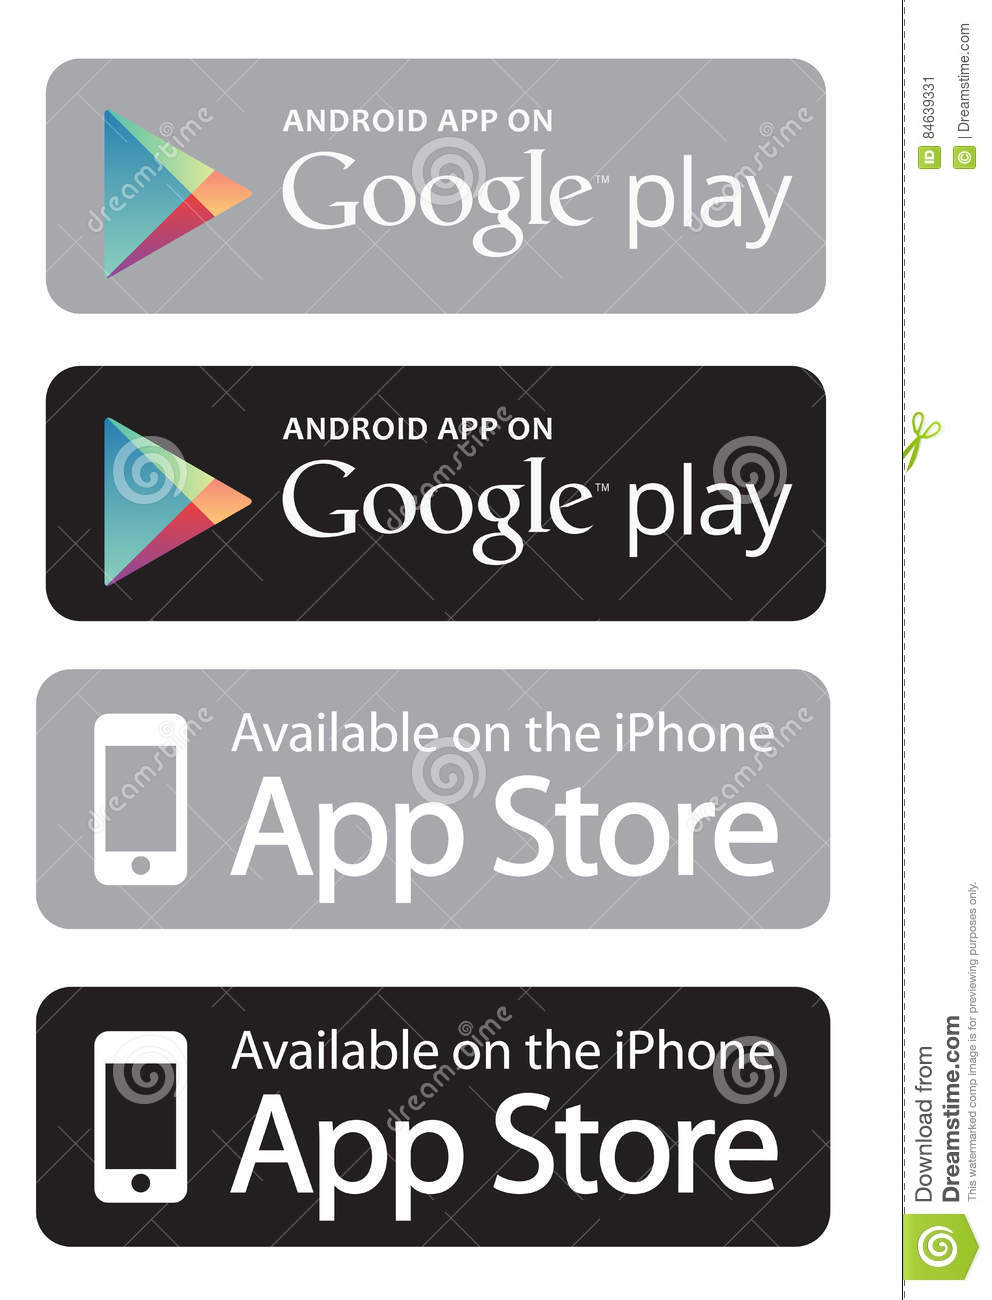 Android Apps On Google Play Store